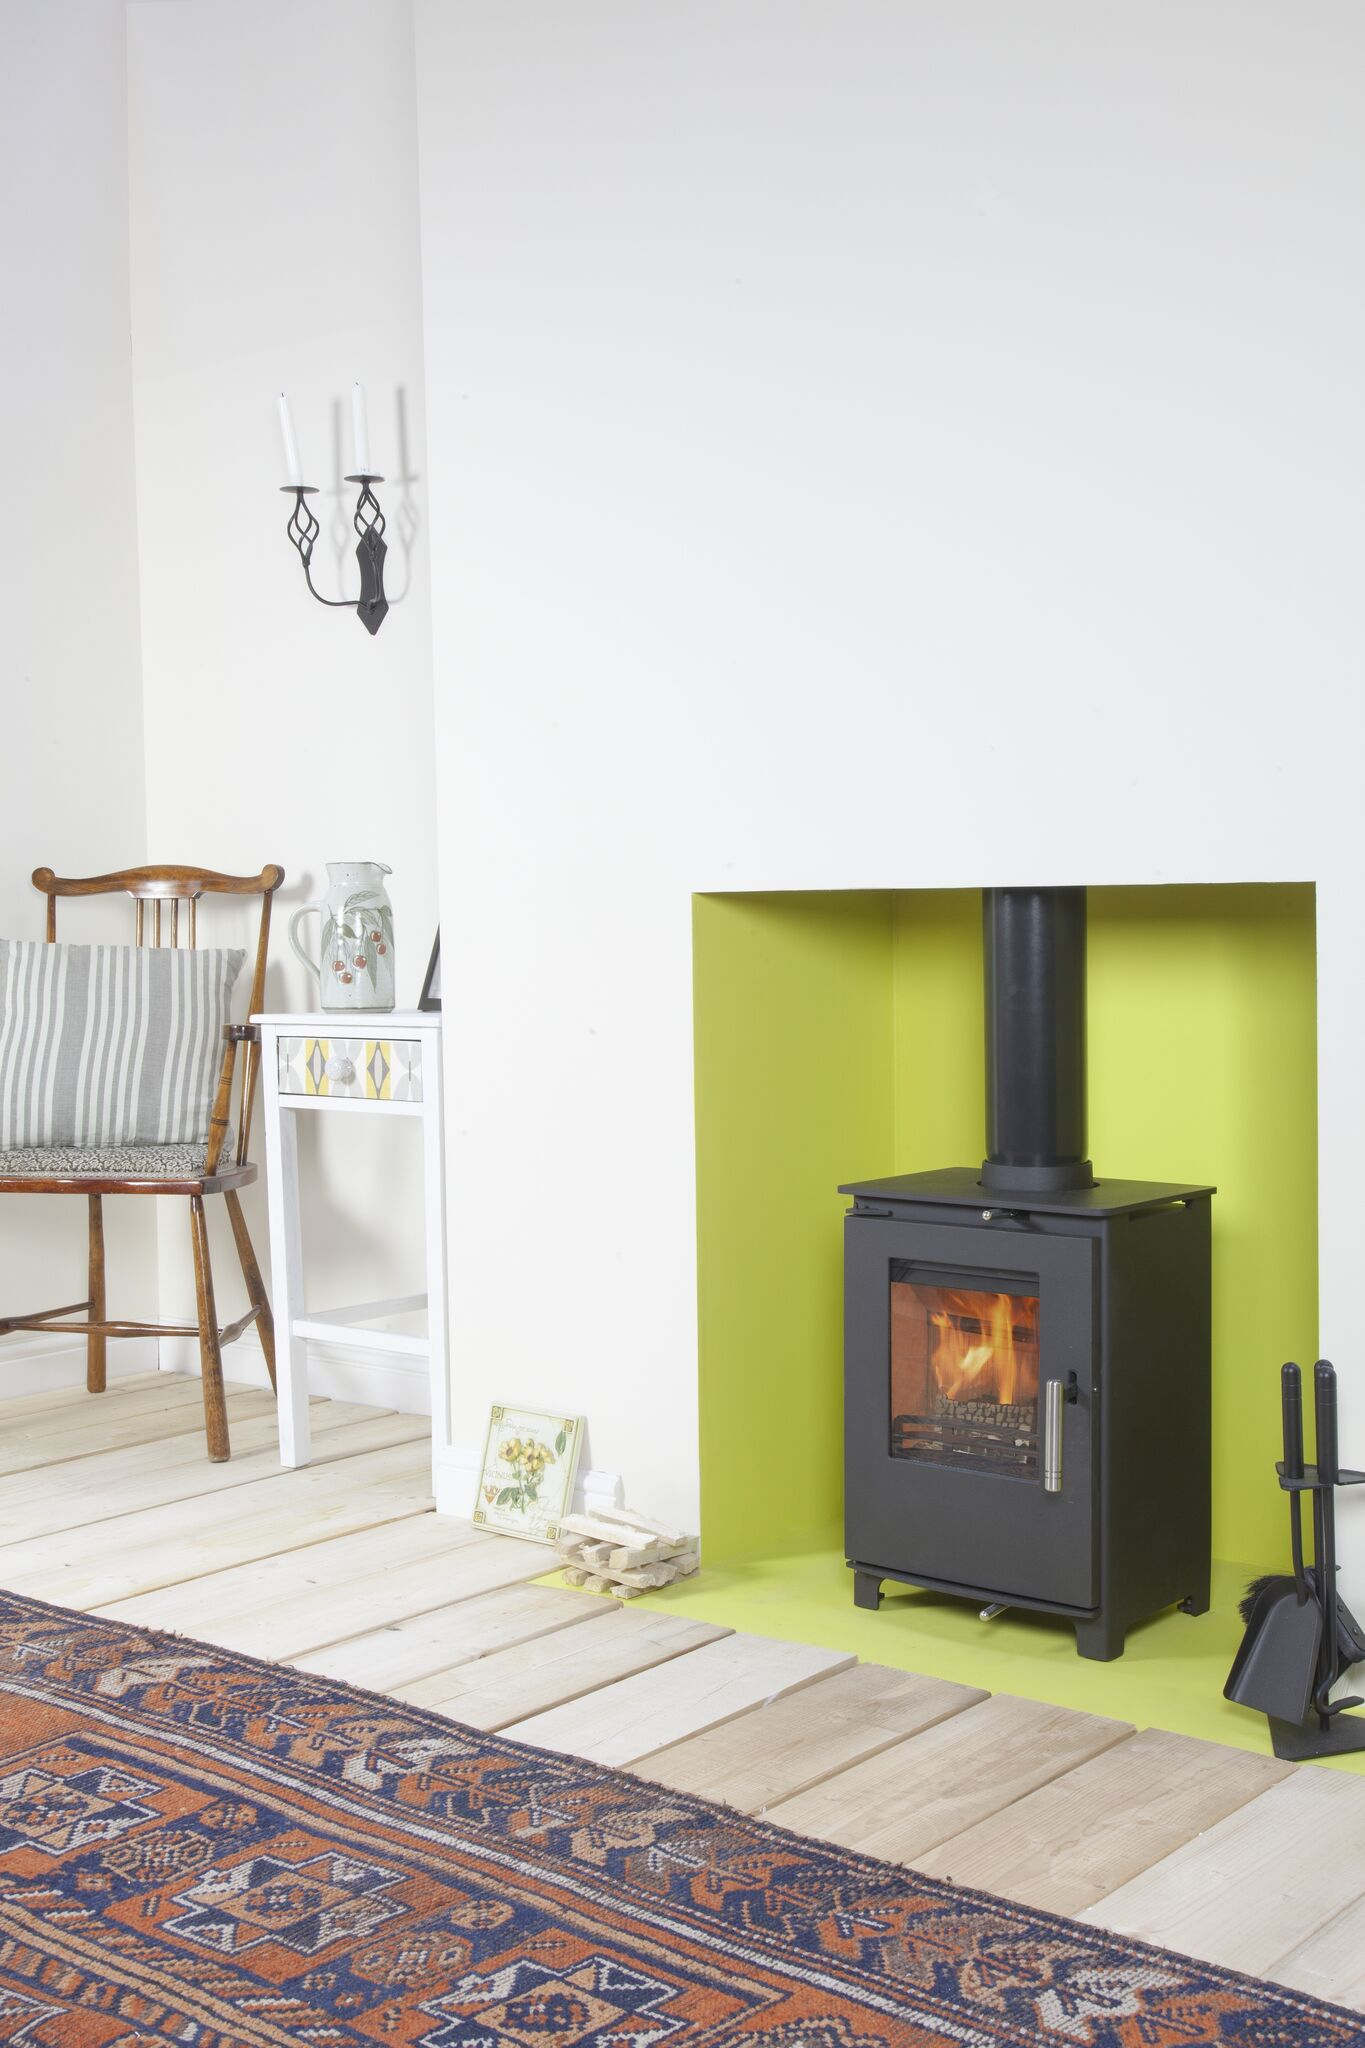 freestanding, granite hearth, slate hearth, woodburning, multifuel, Bangor, Newtownards, Belfast, Holywood, Conlig, Stove yard, Fireplaces, flue pipe, hearths, room heater, wilsons, Portaferry, Kircubbin, Greyabbey, riven slate, wooden beans, fireplace beams, fire chambers, open fires, logs, coal, grates, stove glass, grate bars, ards fireplaces, Jubilee Road, Helensbay, Crawfordsburn, flexi flue, chimney cowls, down draught cowls, gas, natural gas, reflex 75T, log effect fire, Gazco, Loxton, stovax, medip, arada, varde, Henley, hunter, yeoman